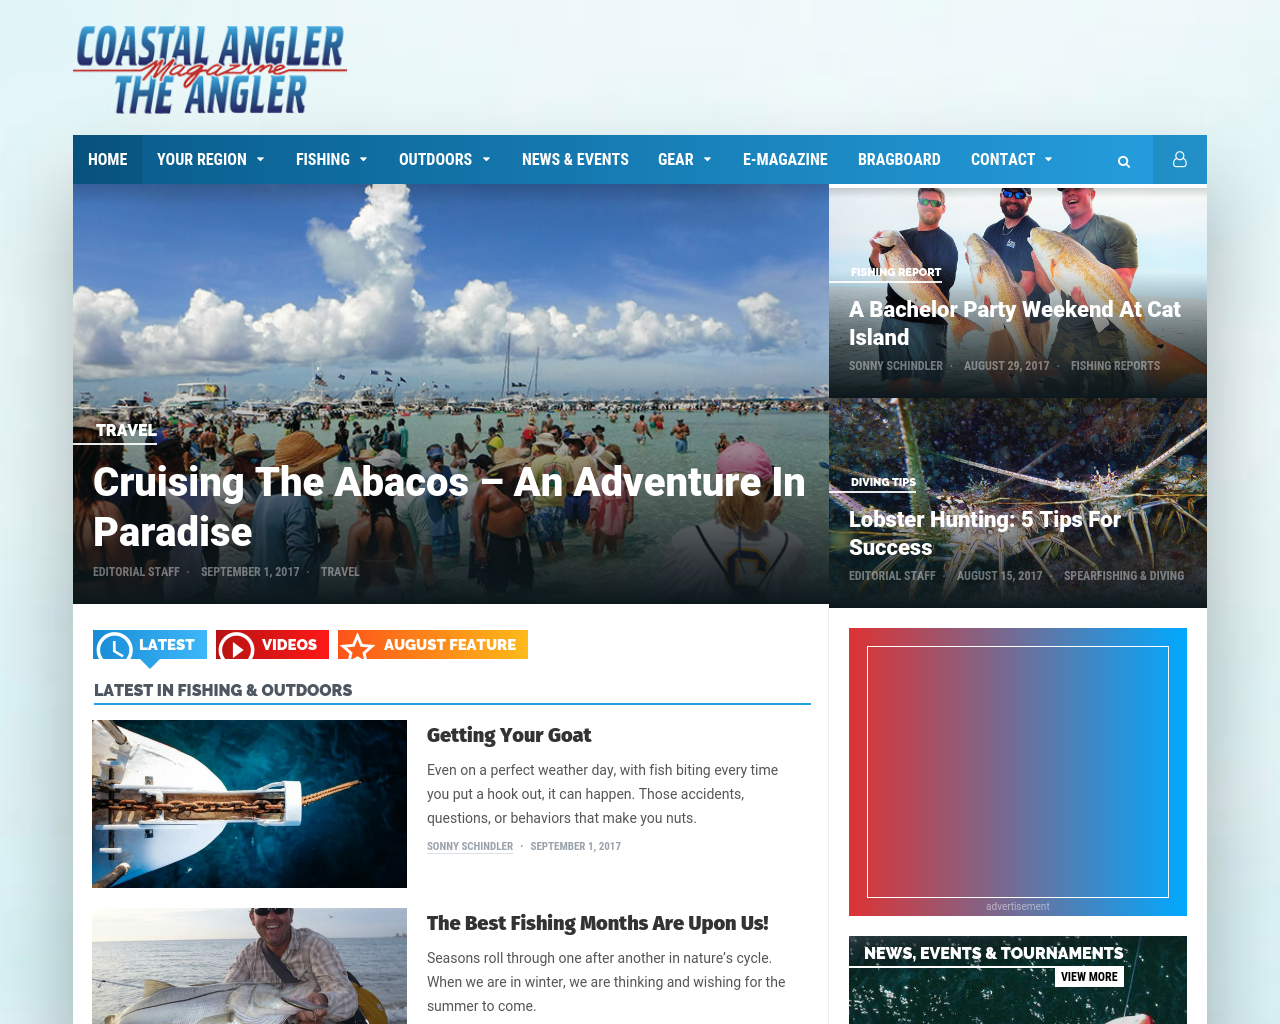 The-Angler-Magazine-Advertising-Reviews-Pricing